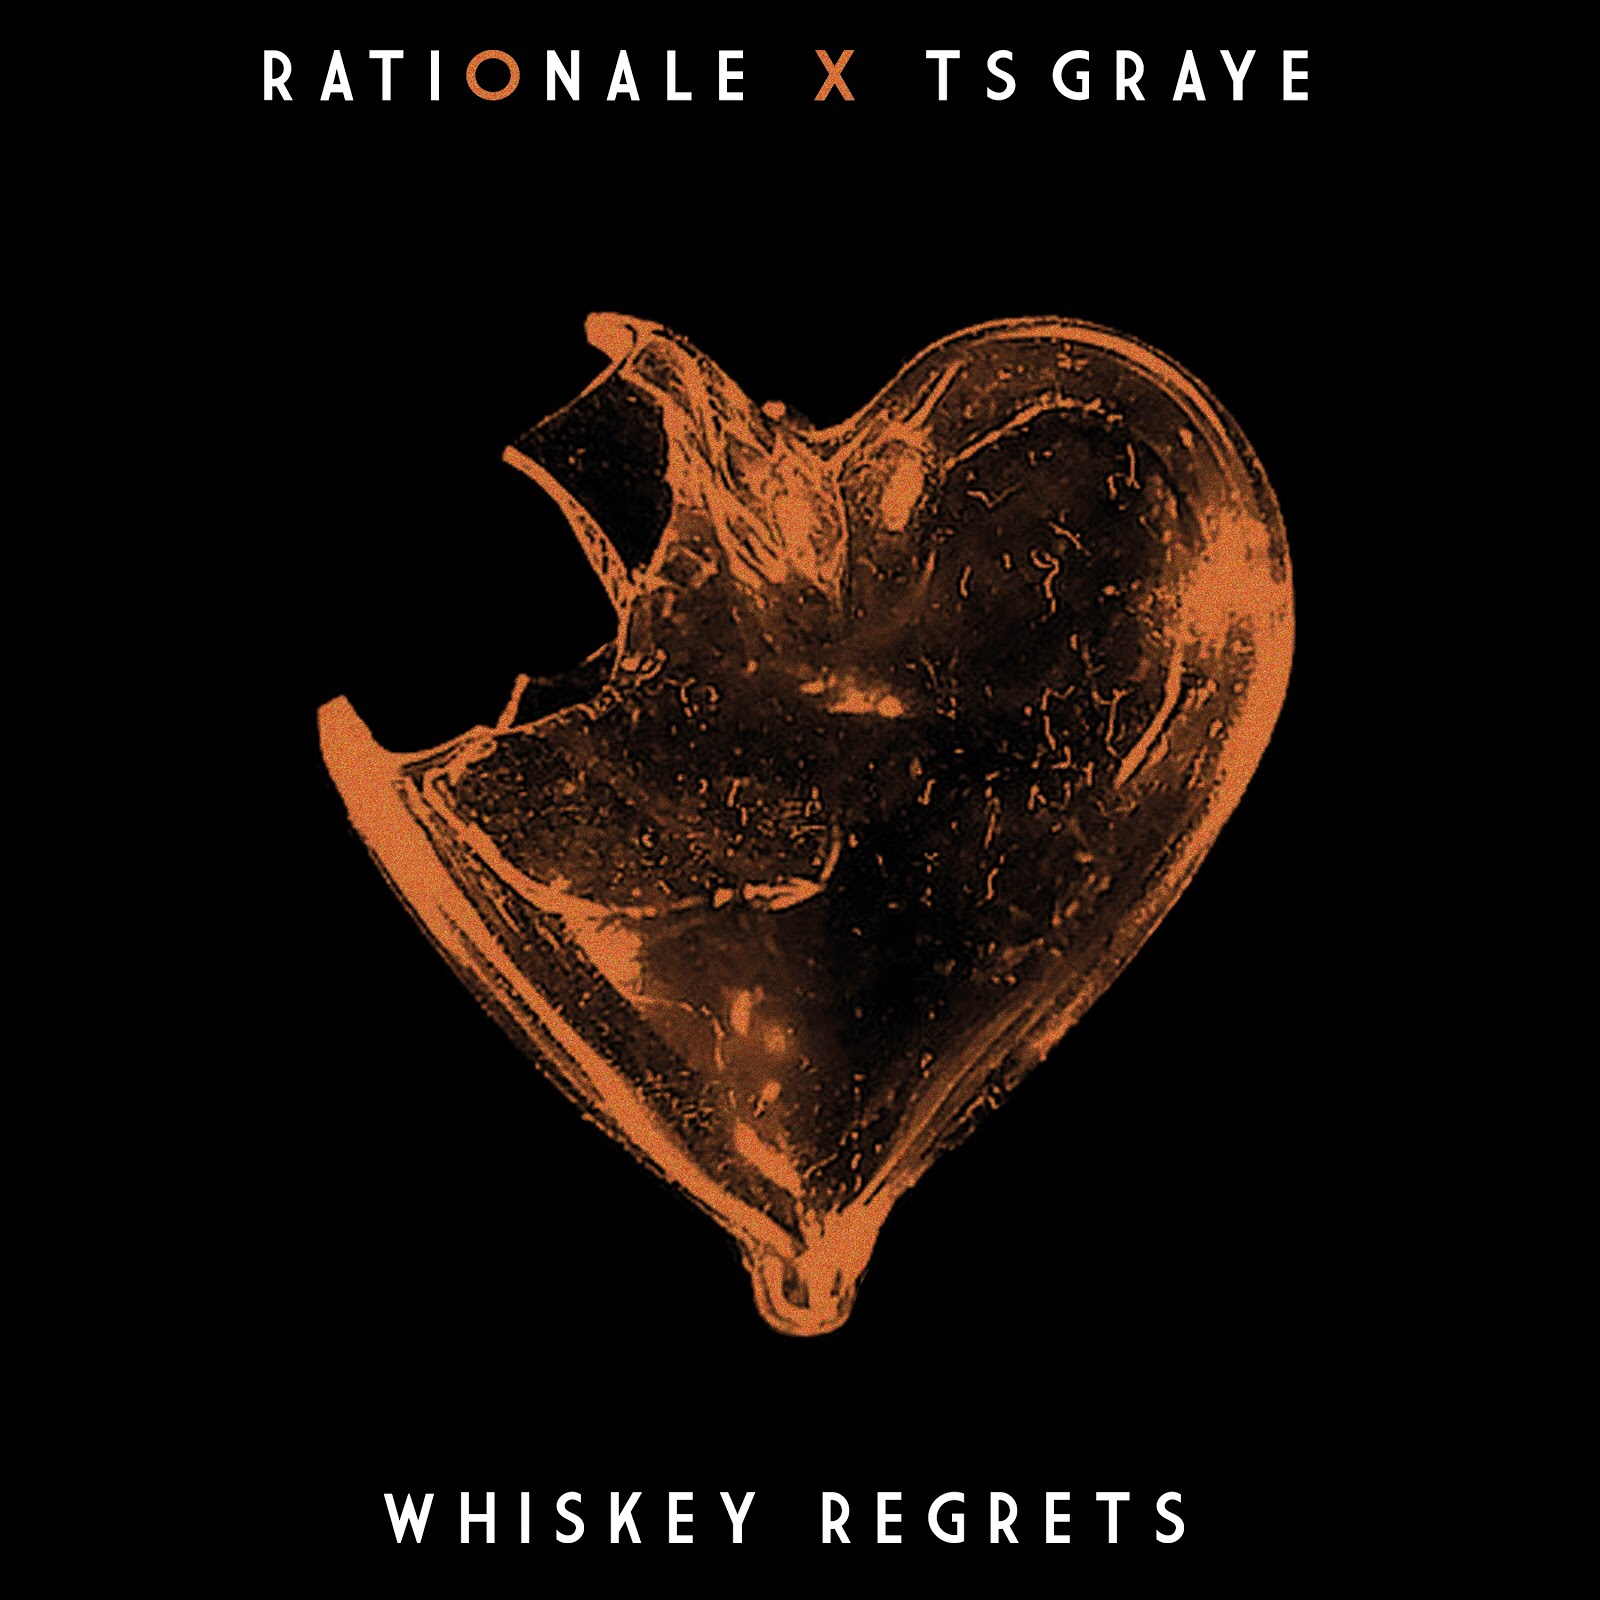 RATIONALE DROPS NEW SINGLE 'WHISKEY REGRETS'